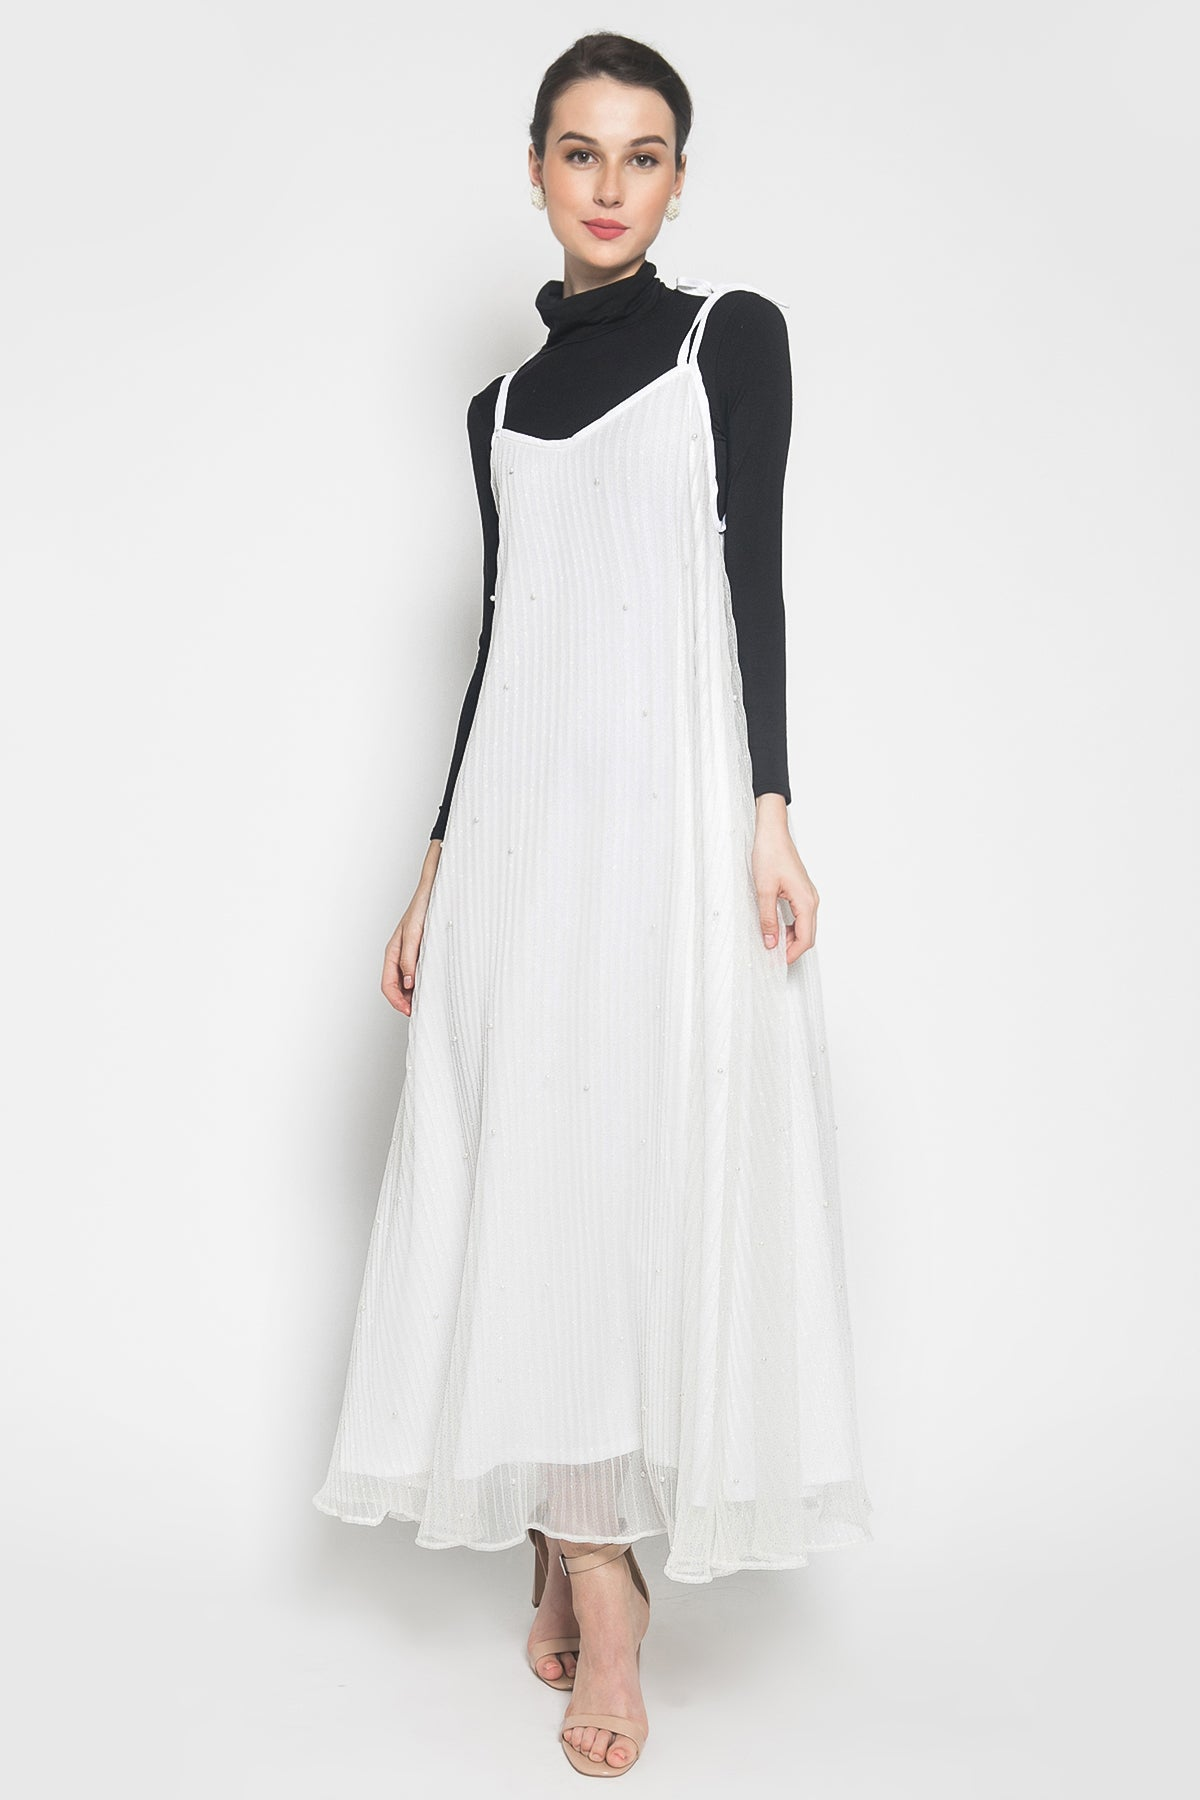 CHA the label Dazzling Pearl Dress in White